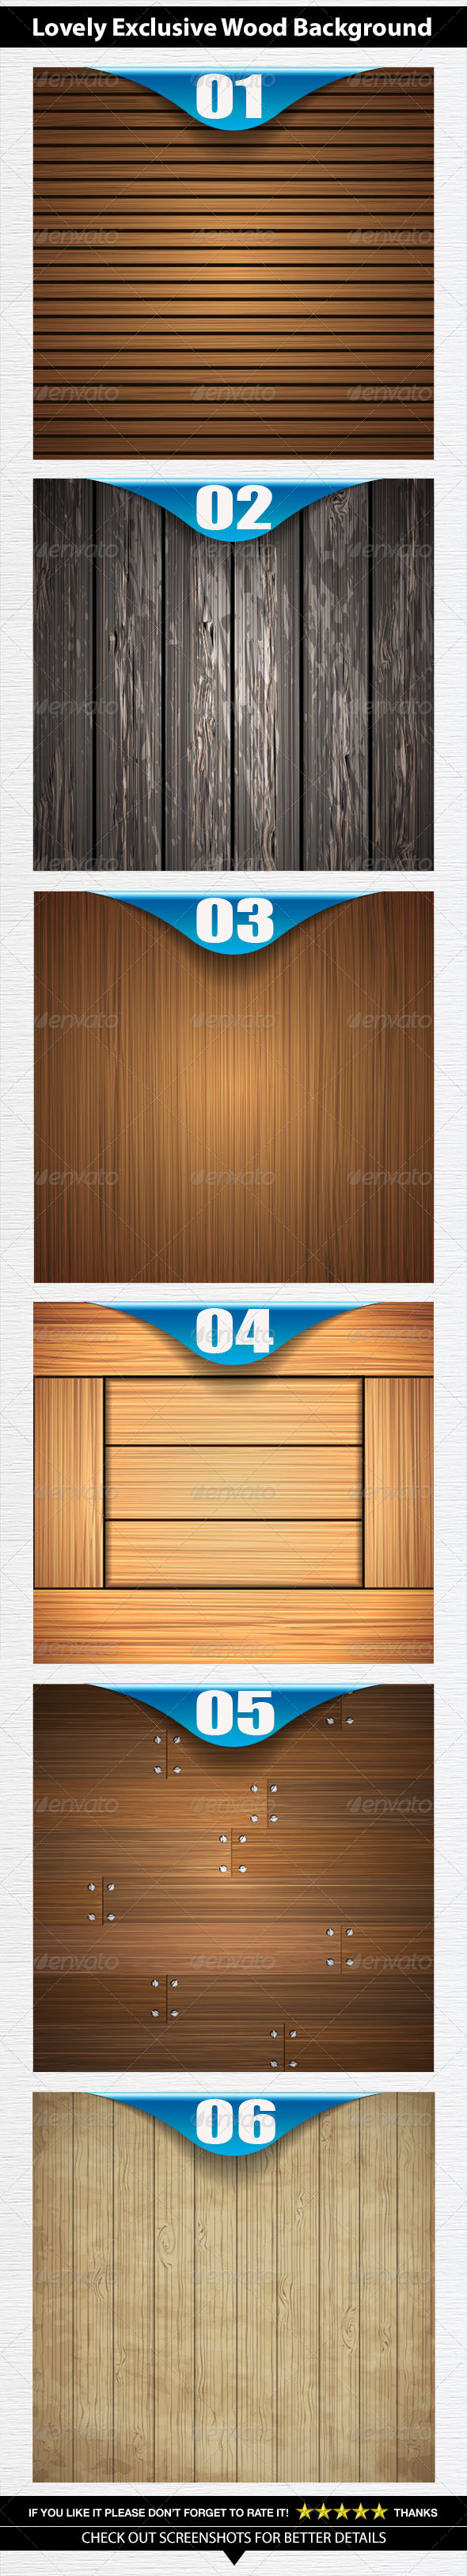 Wooden Background - Vectors